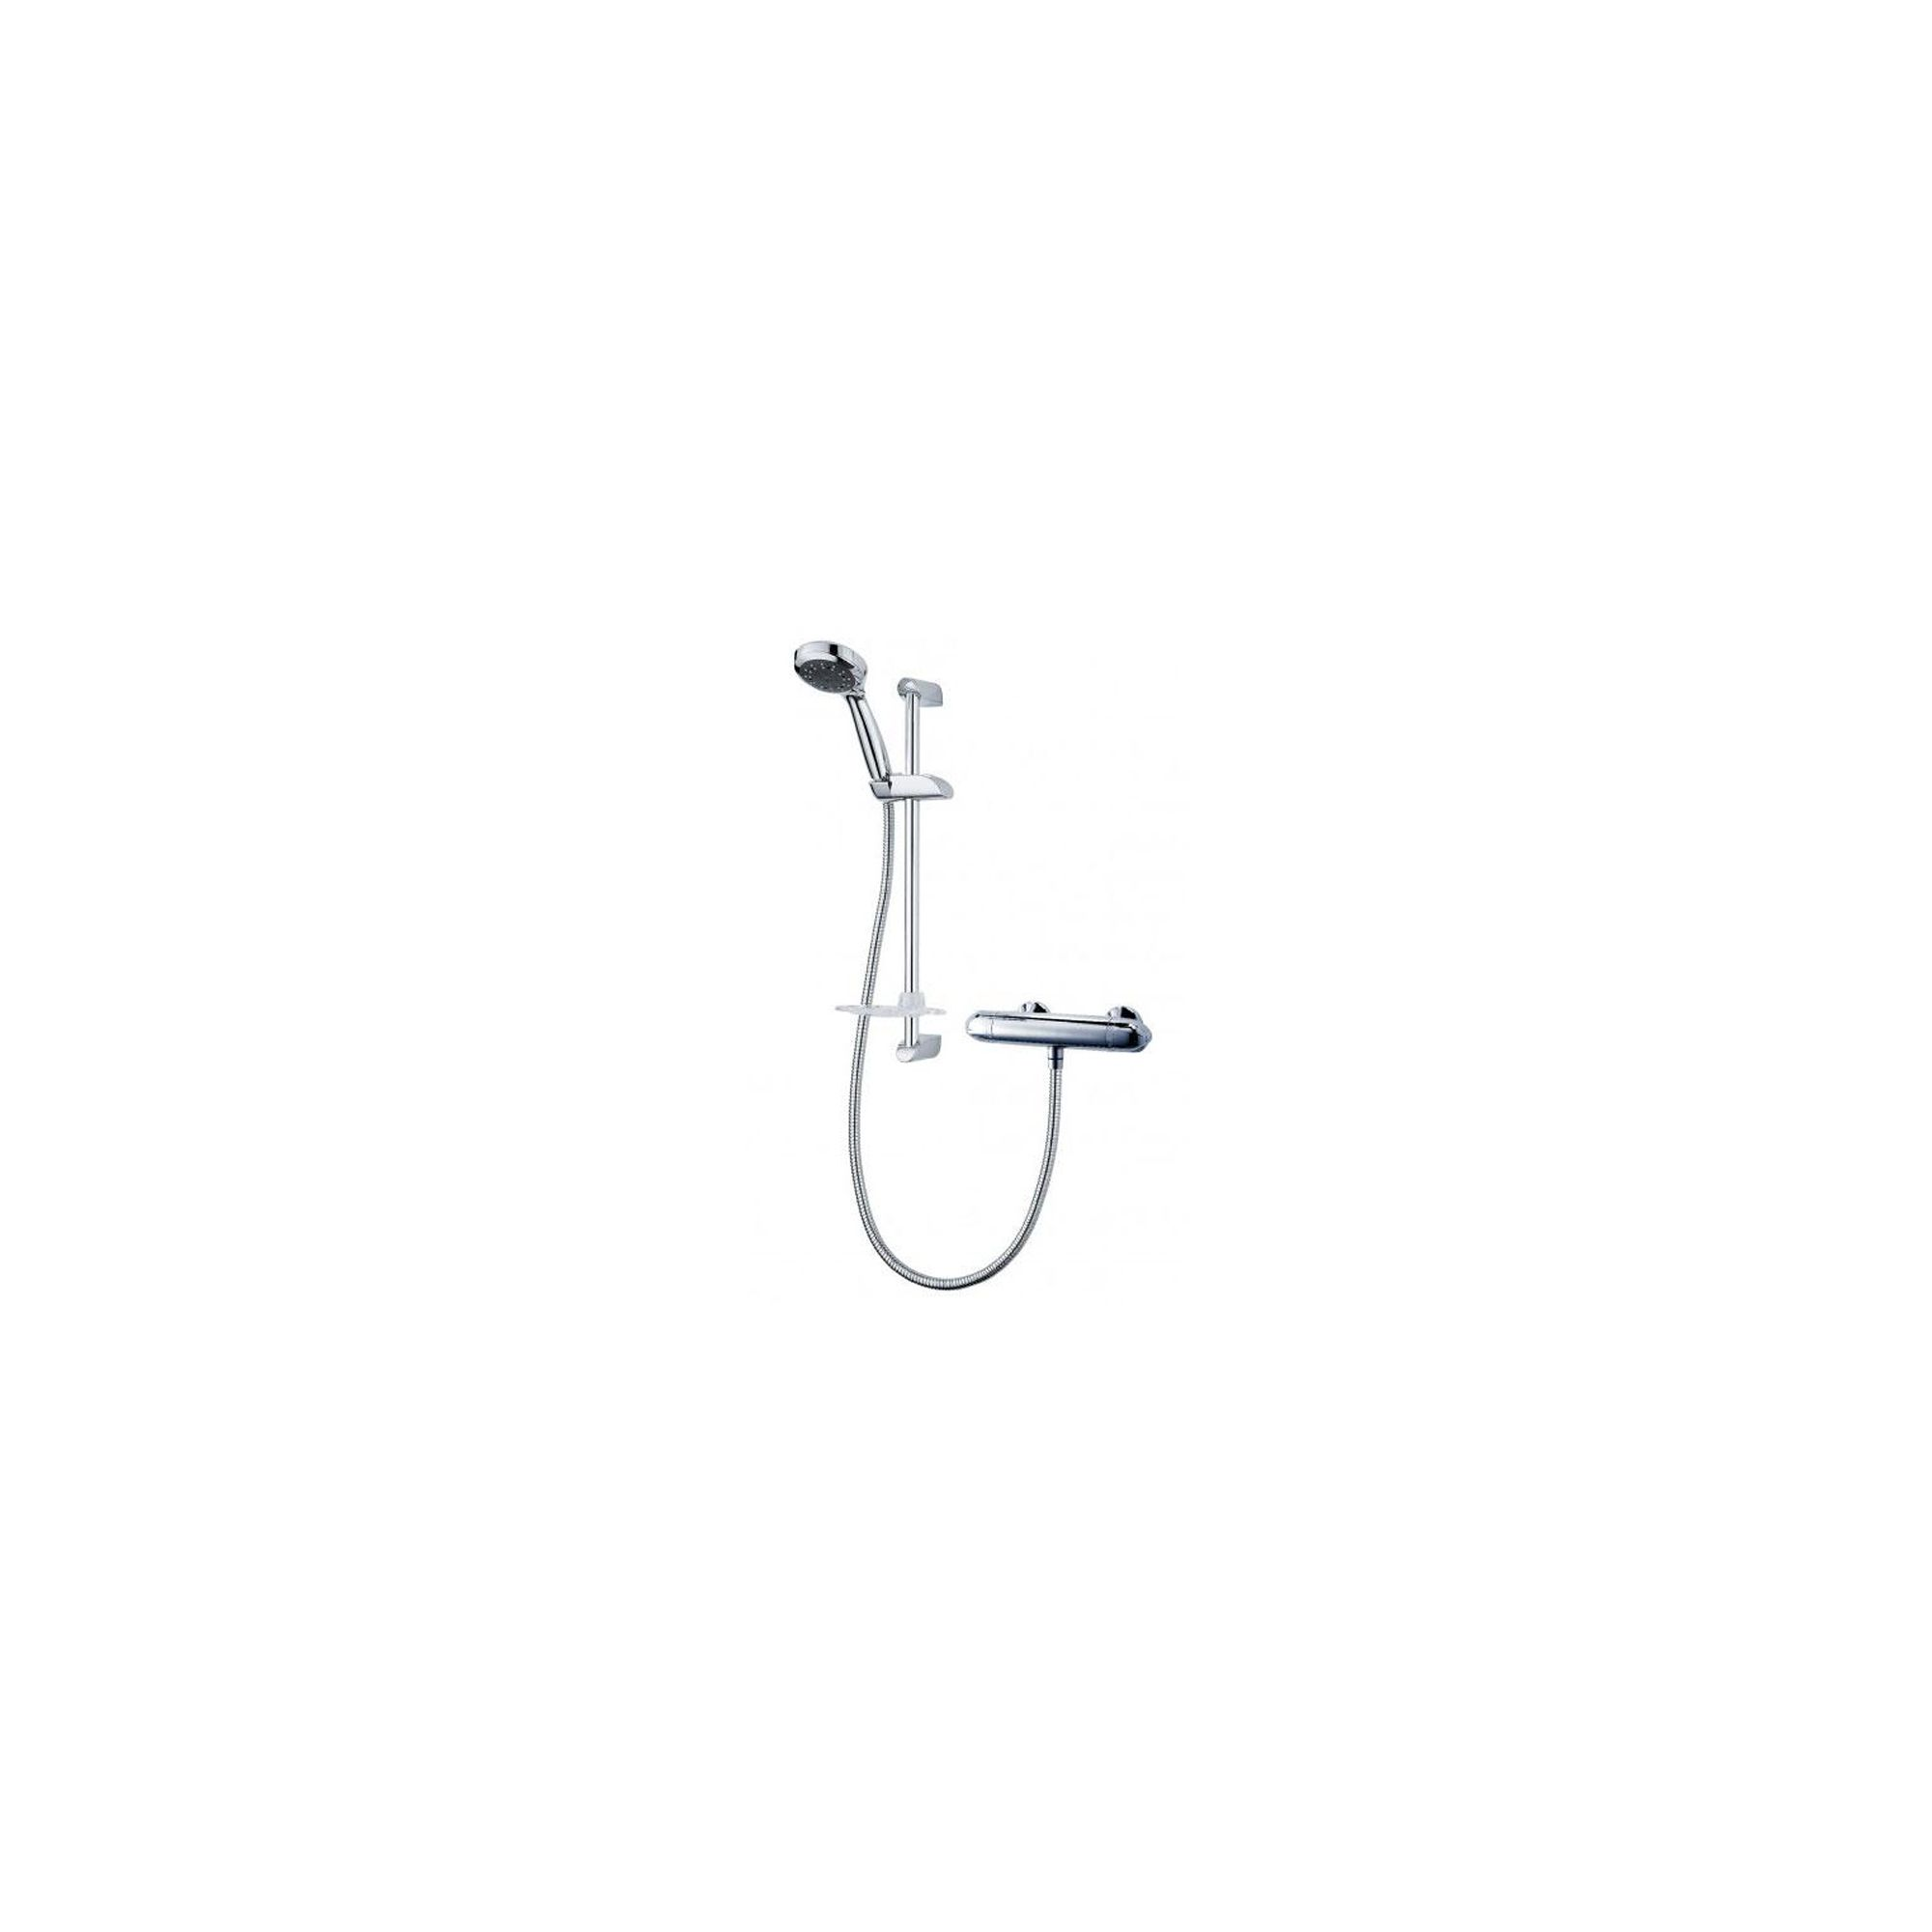 Triton Tyne Thermostatic Bar Mixer Chrome at Tesco Direct